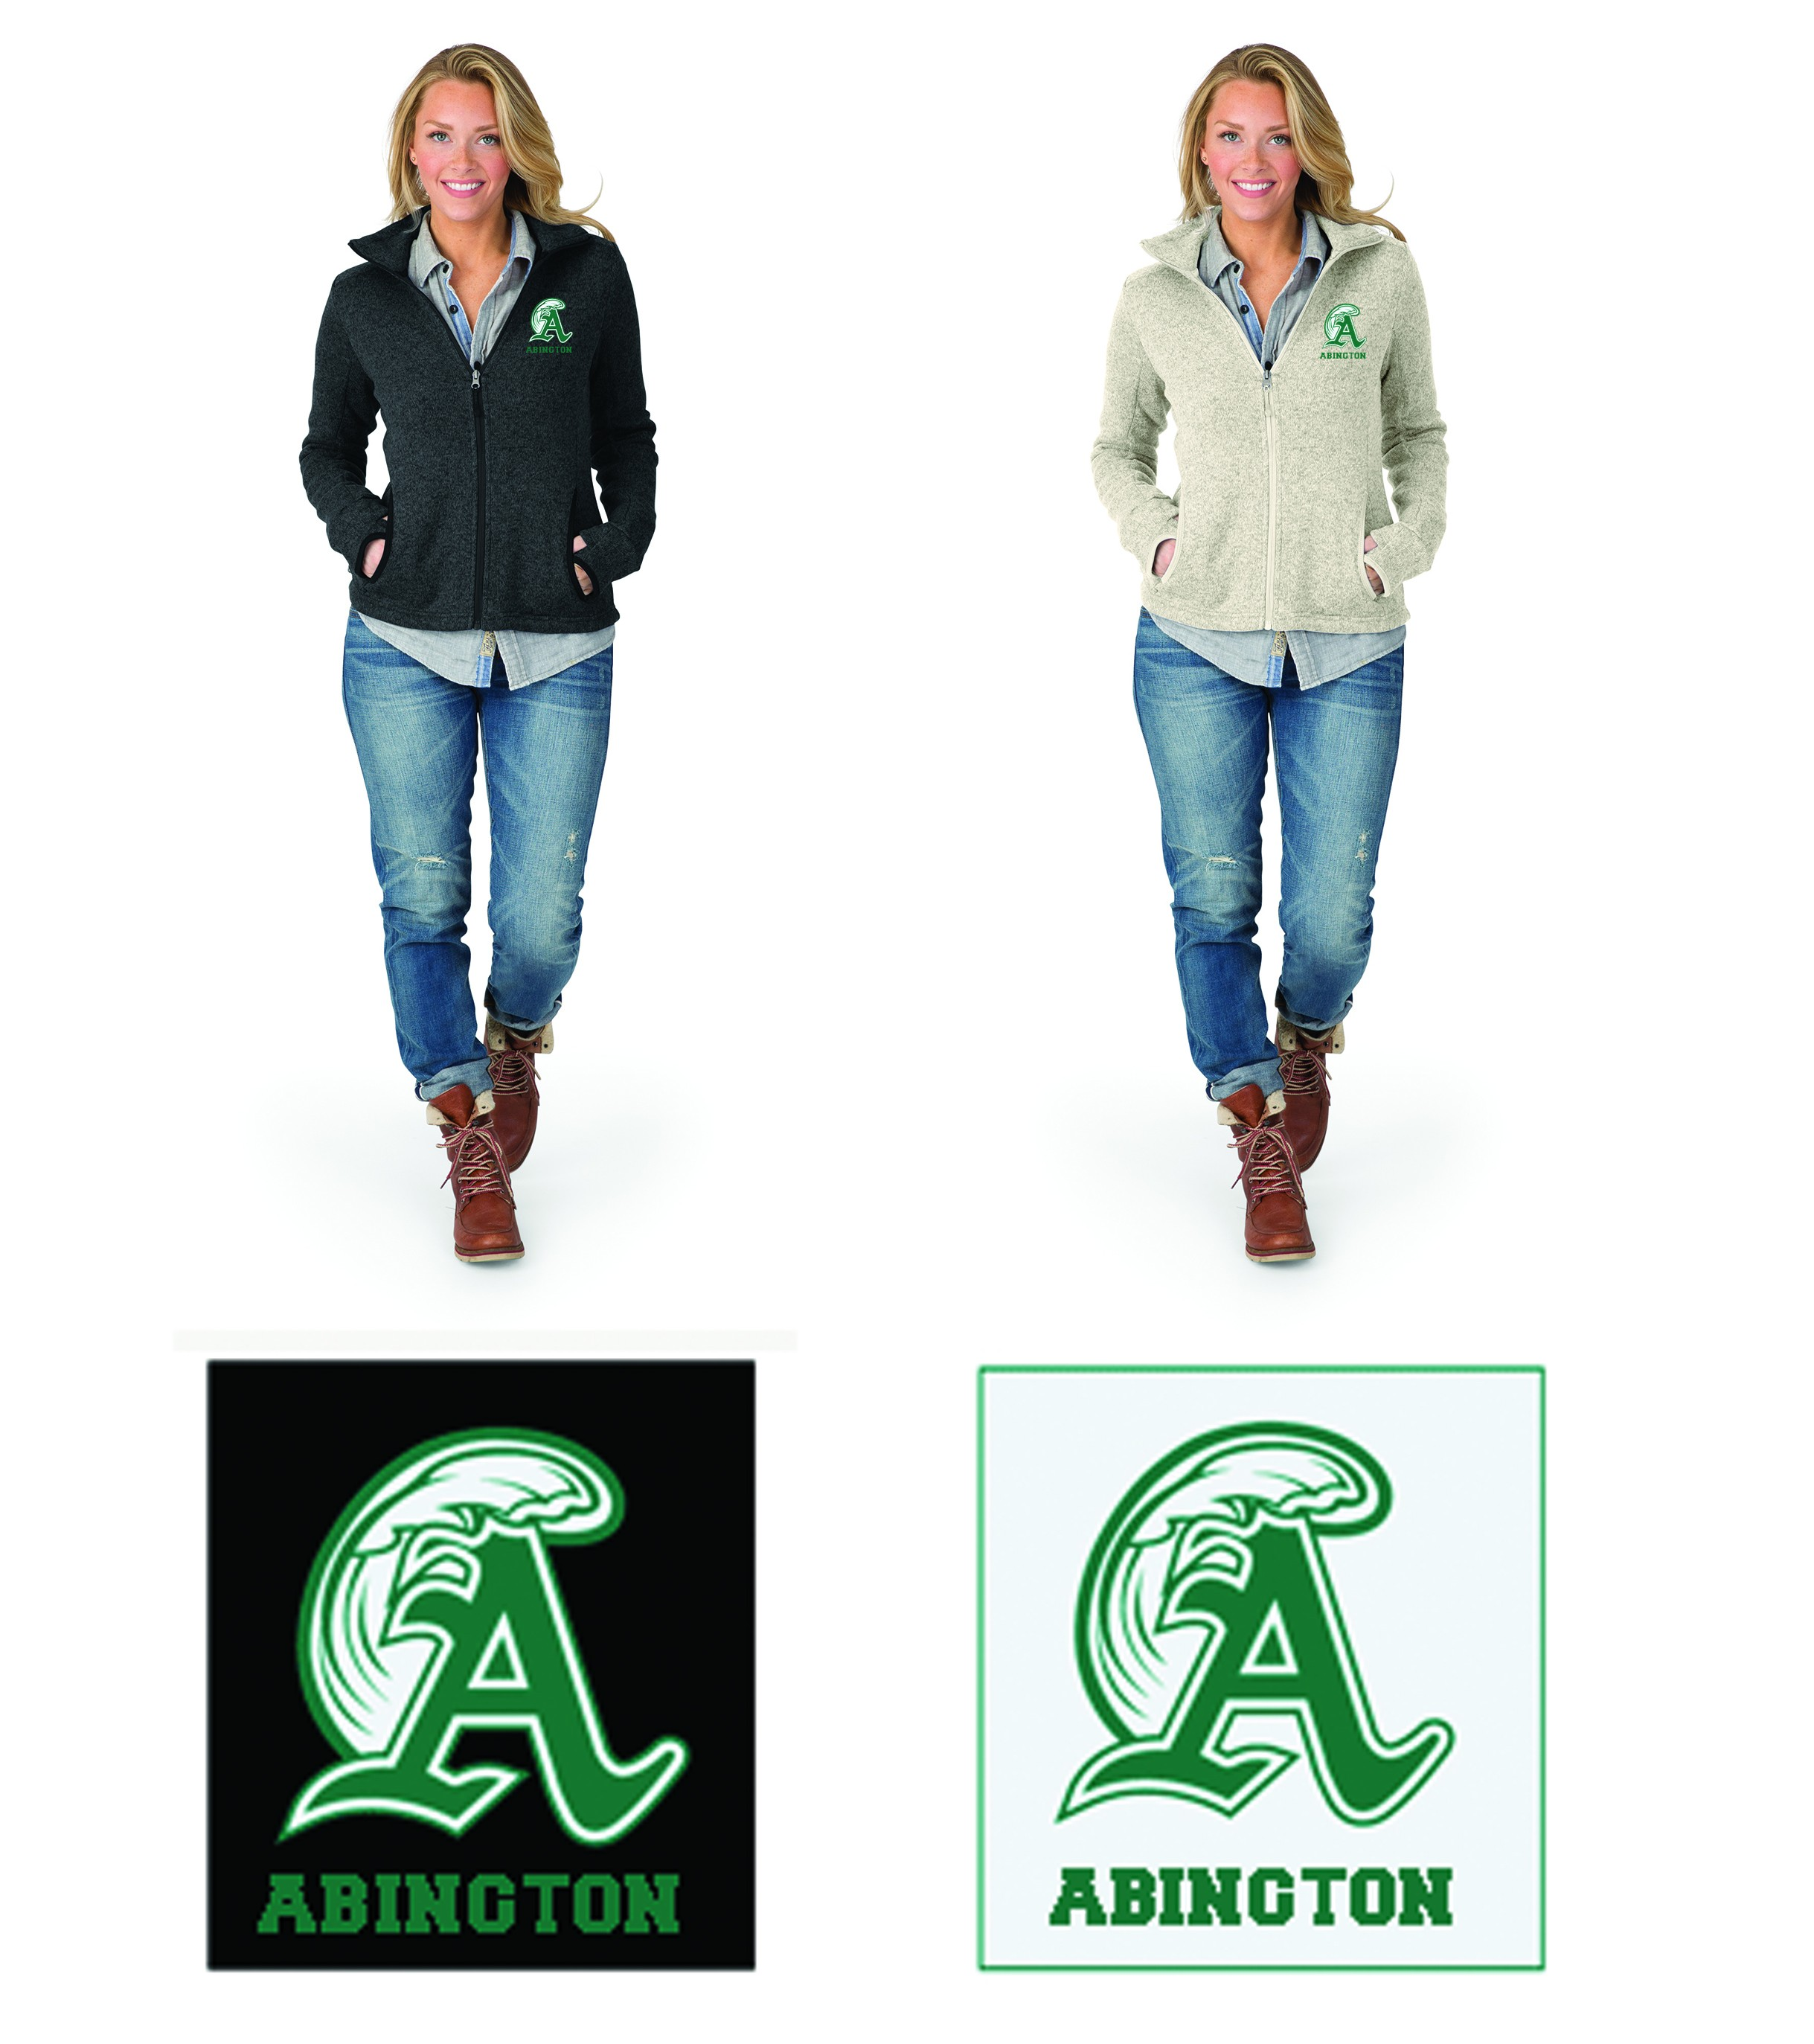 Abington Greenwave Boosters Charles River Women's Heathered Fleece Jacket